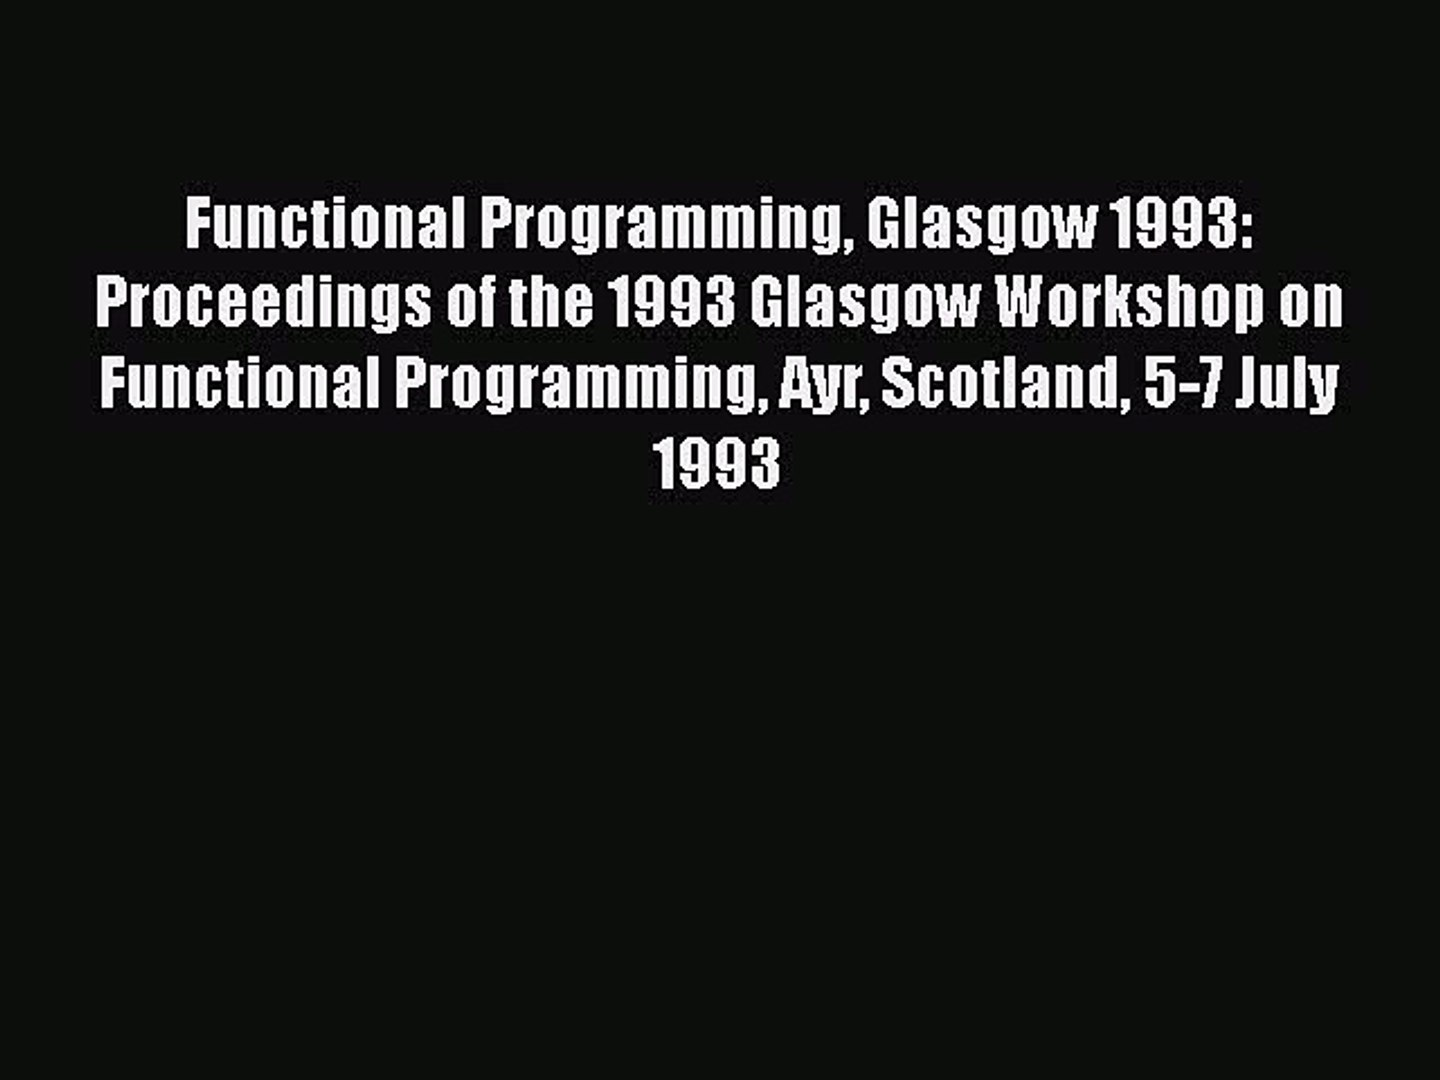 Read Functional Programming Glasgow 1993: Proceedings of the 1993 Glasgow Workshop on Functional